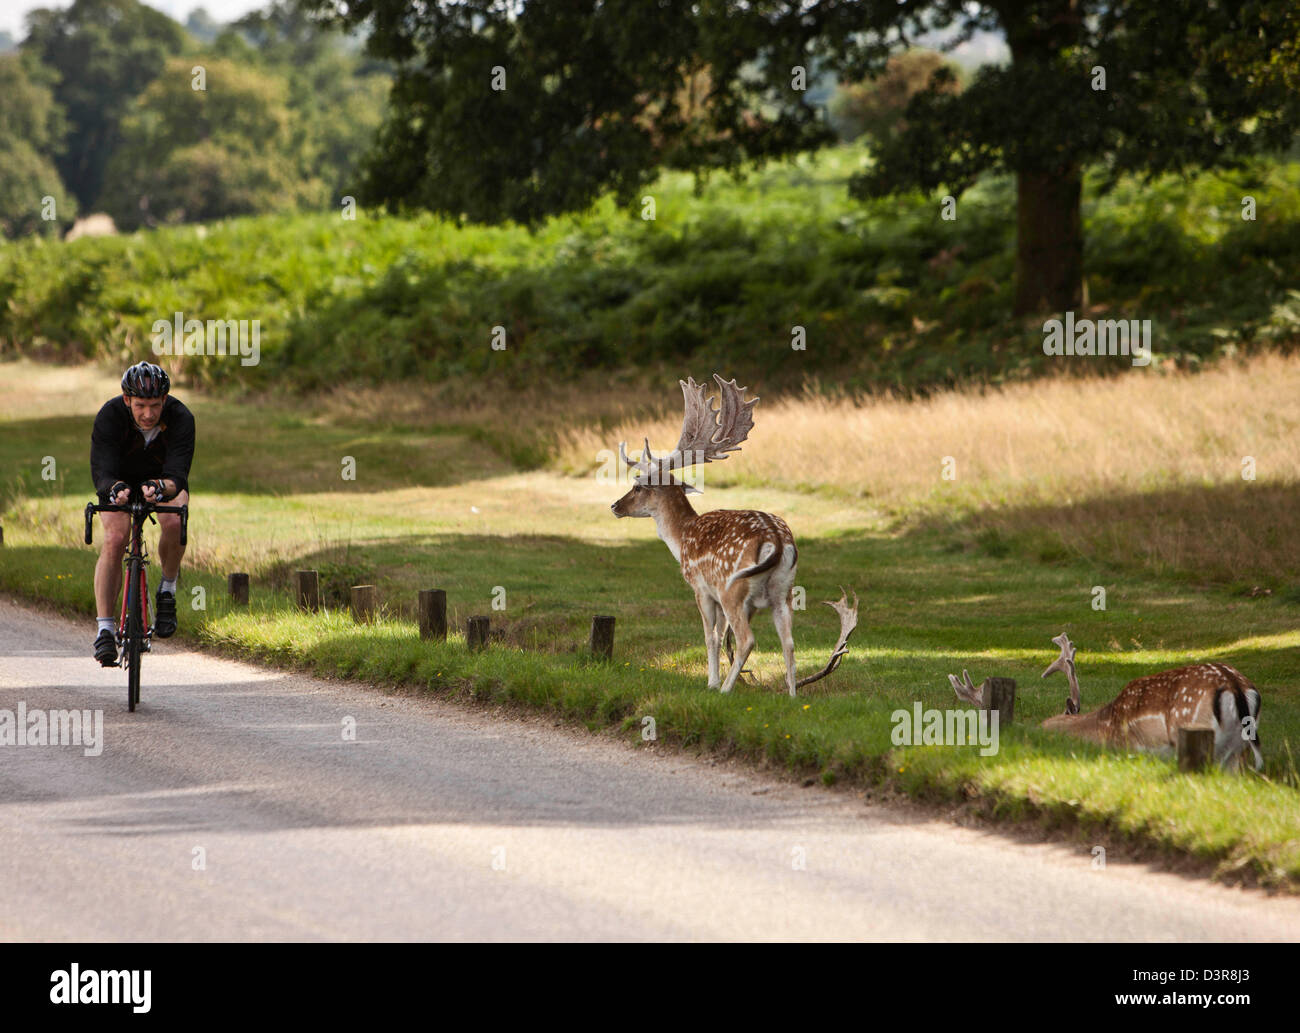 Cyclist in Richmond Park with deer, London, England, UK - Stock Image